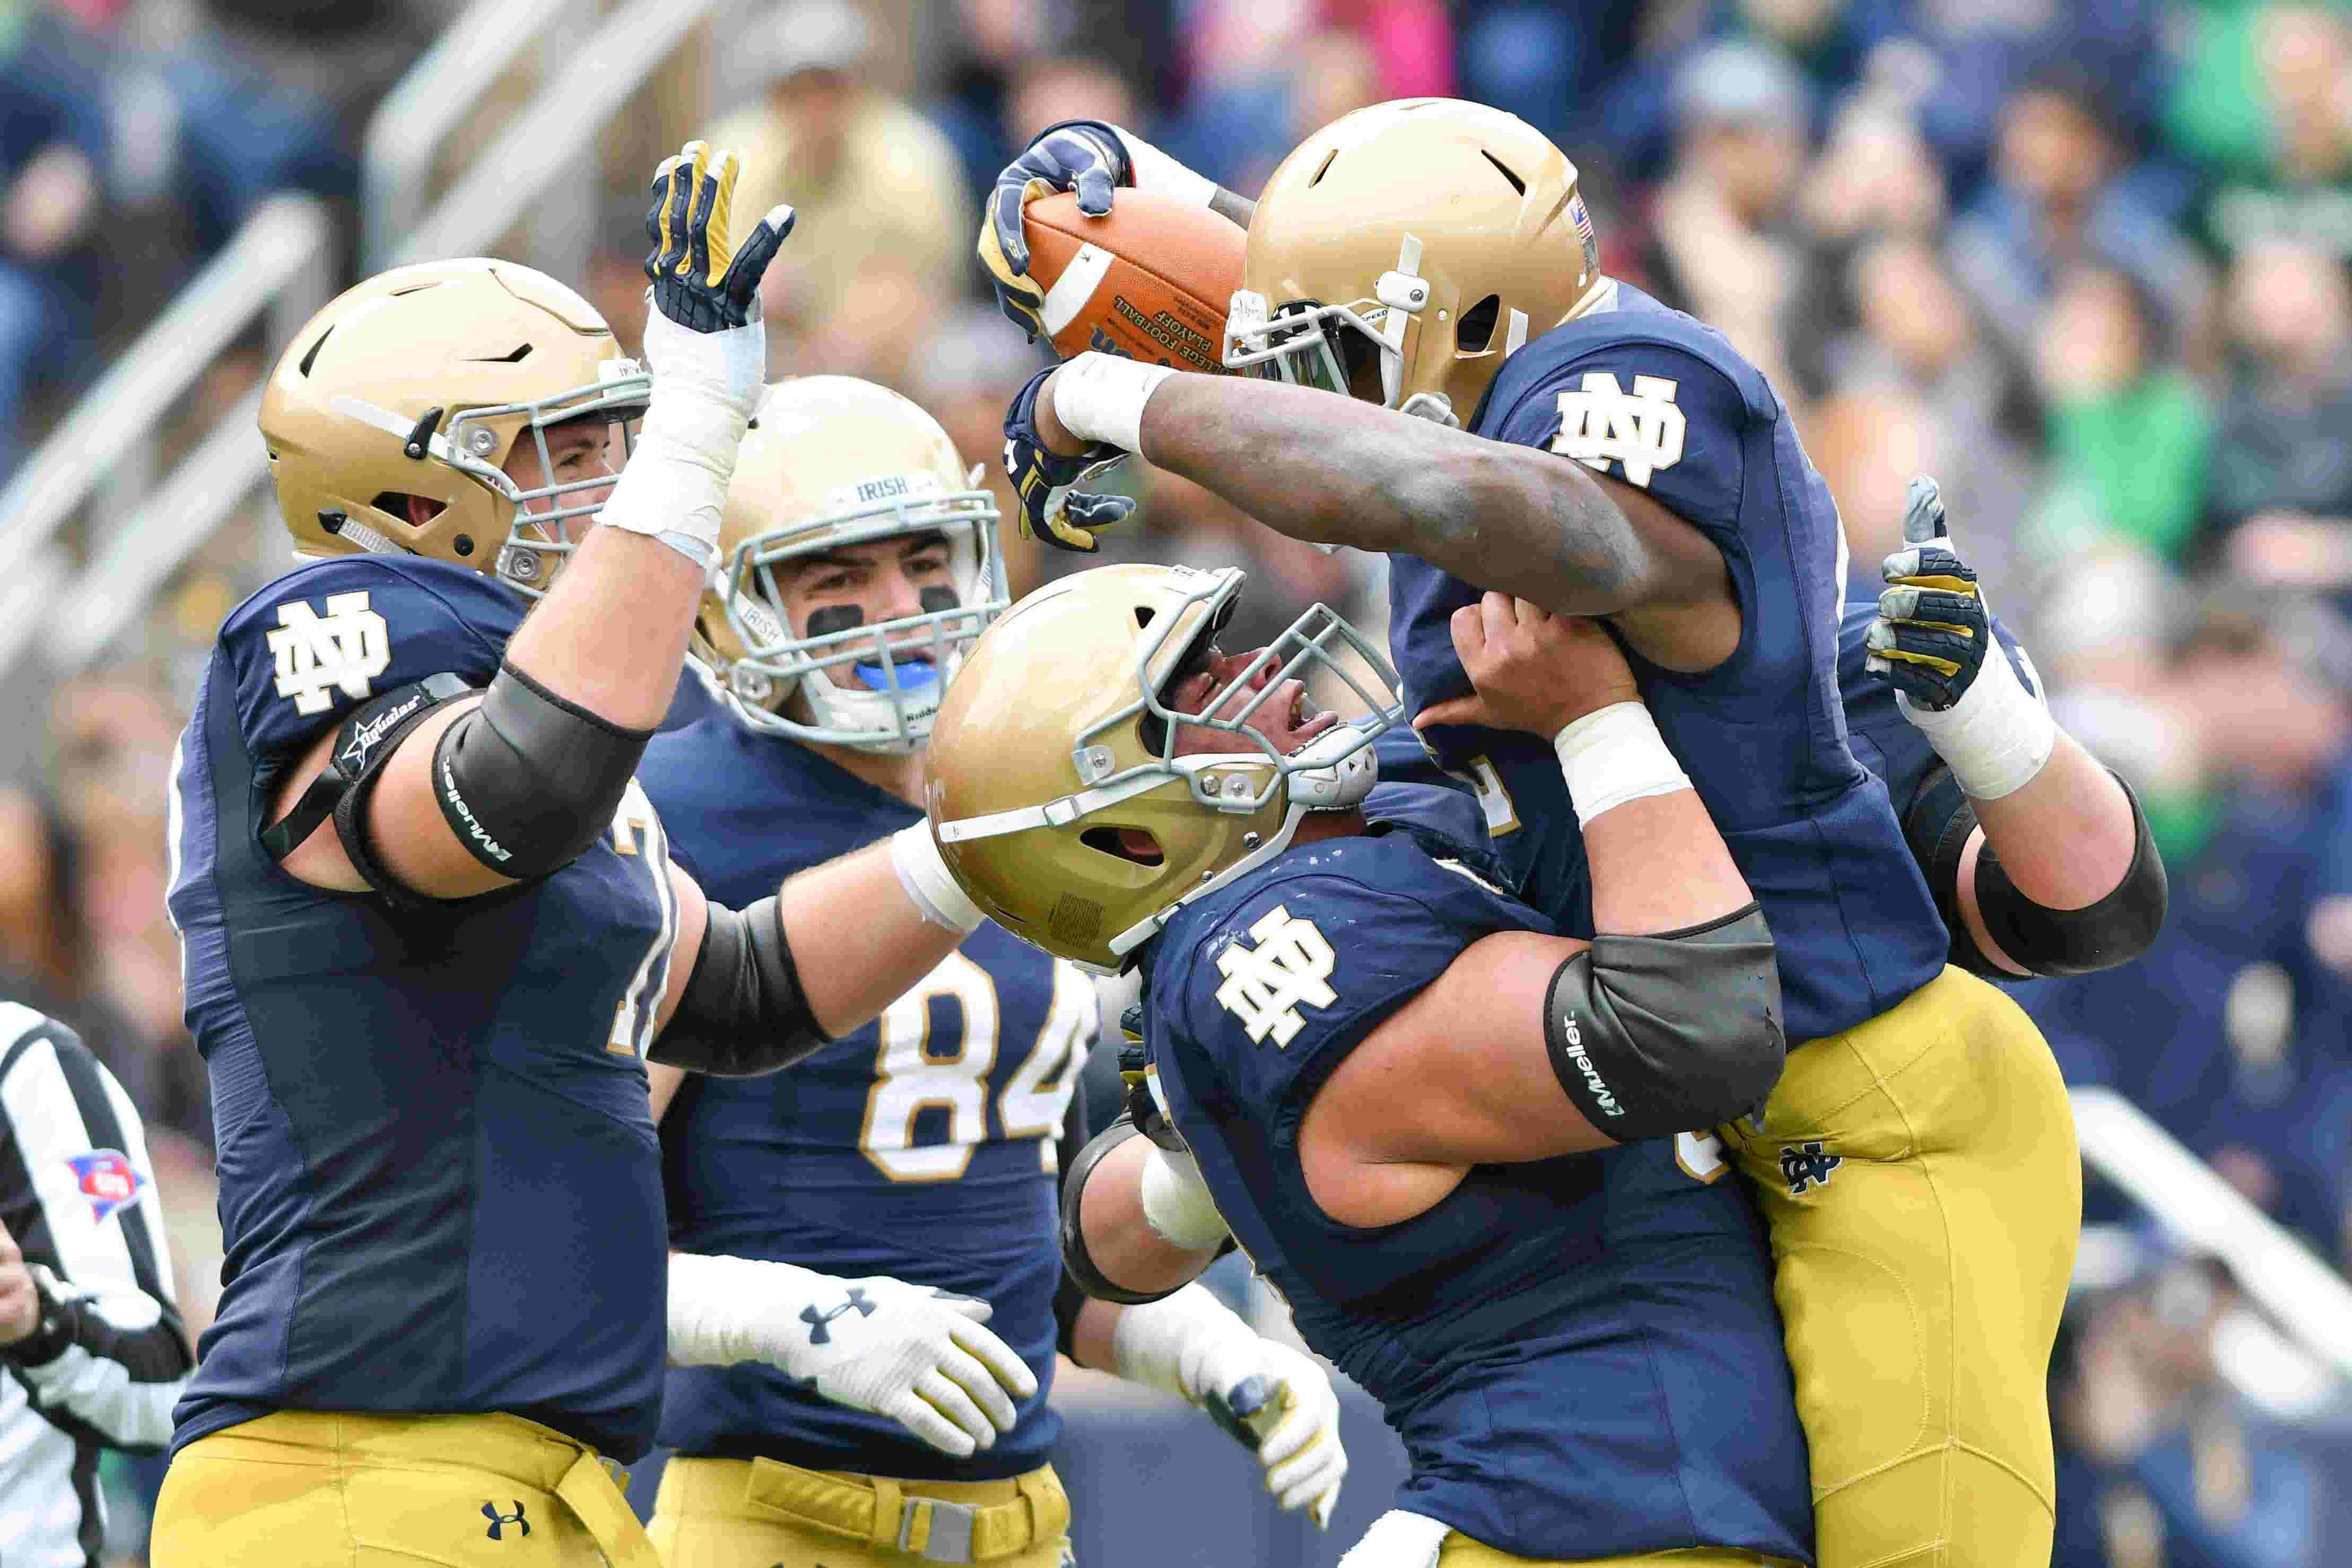 notre dame football 2018 schedule: ranking the opponents